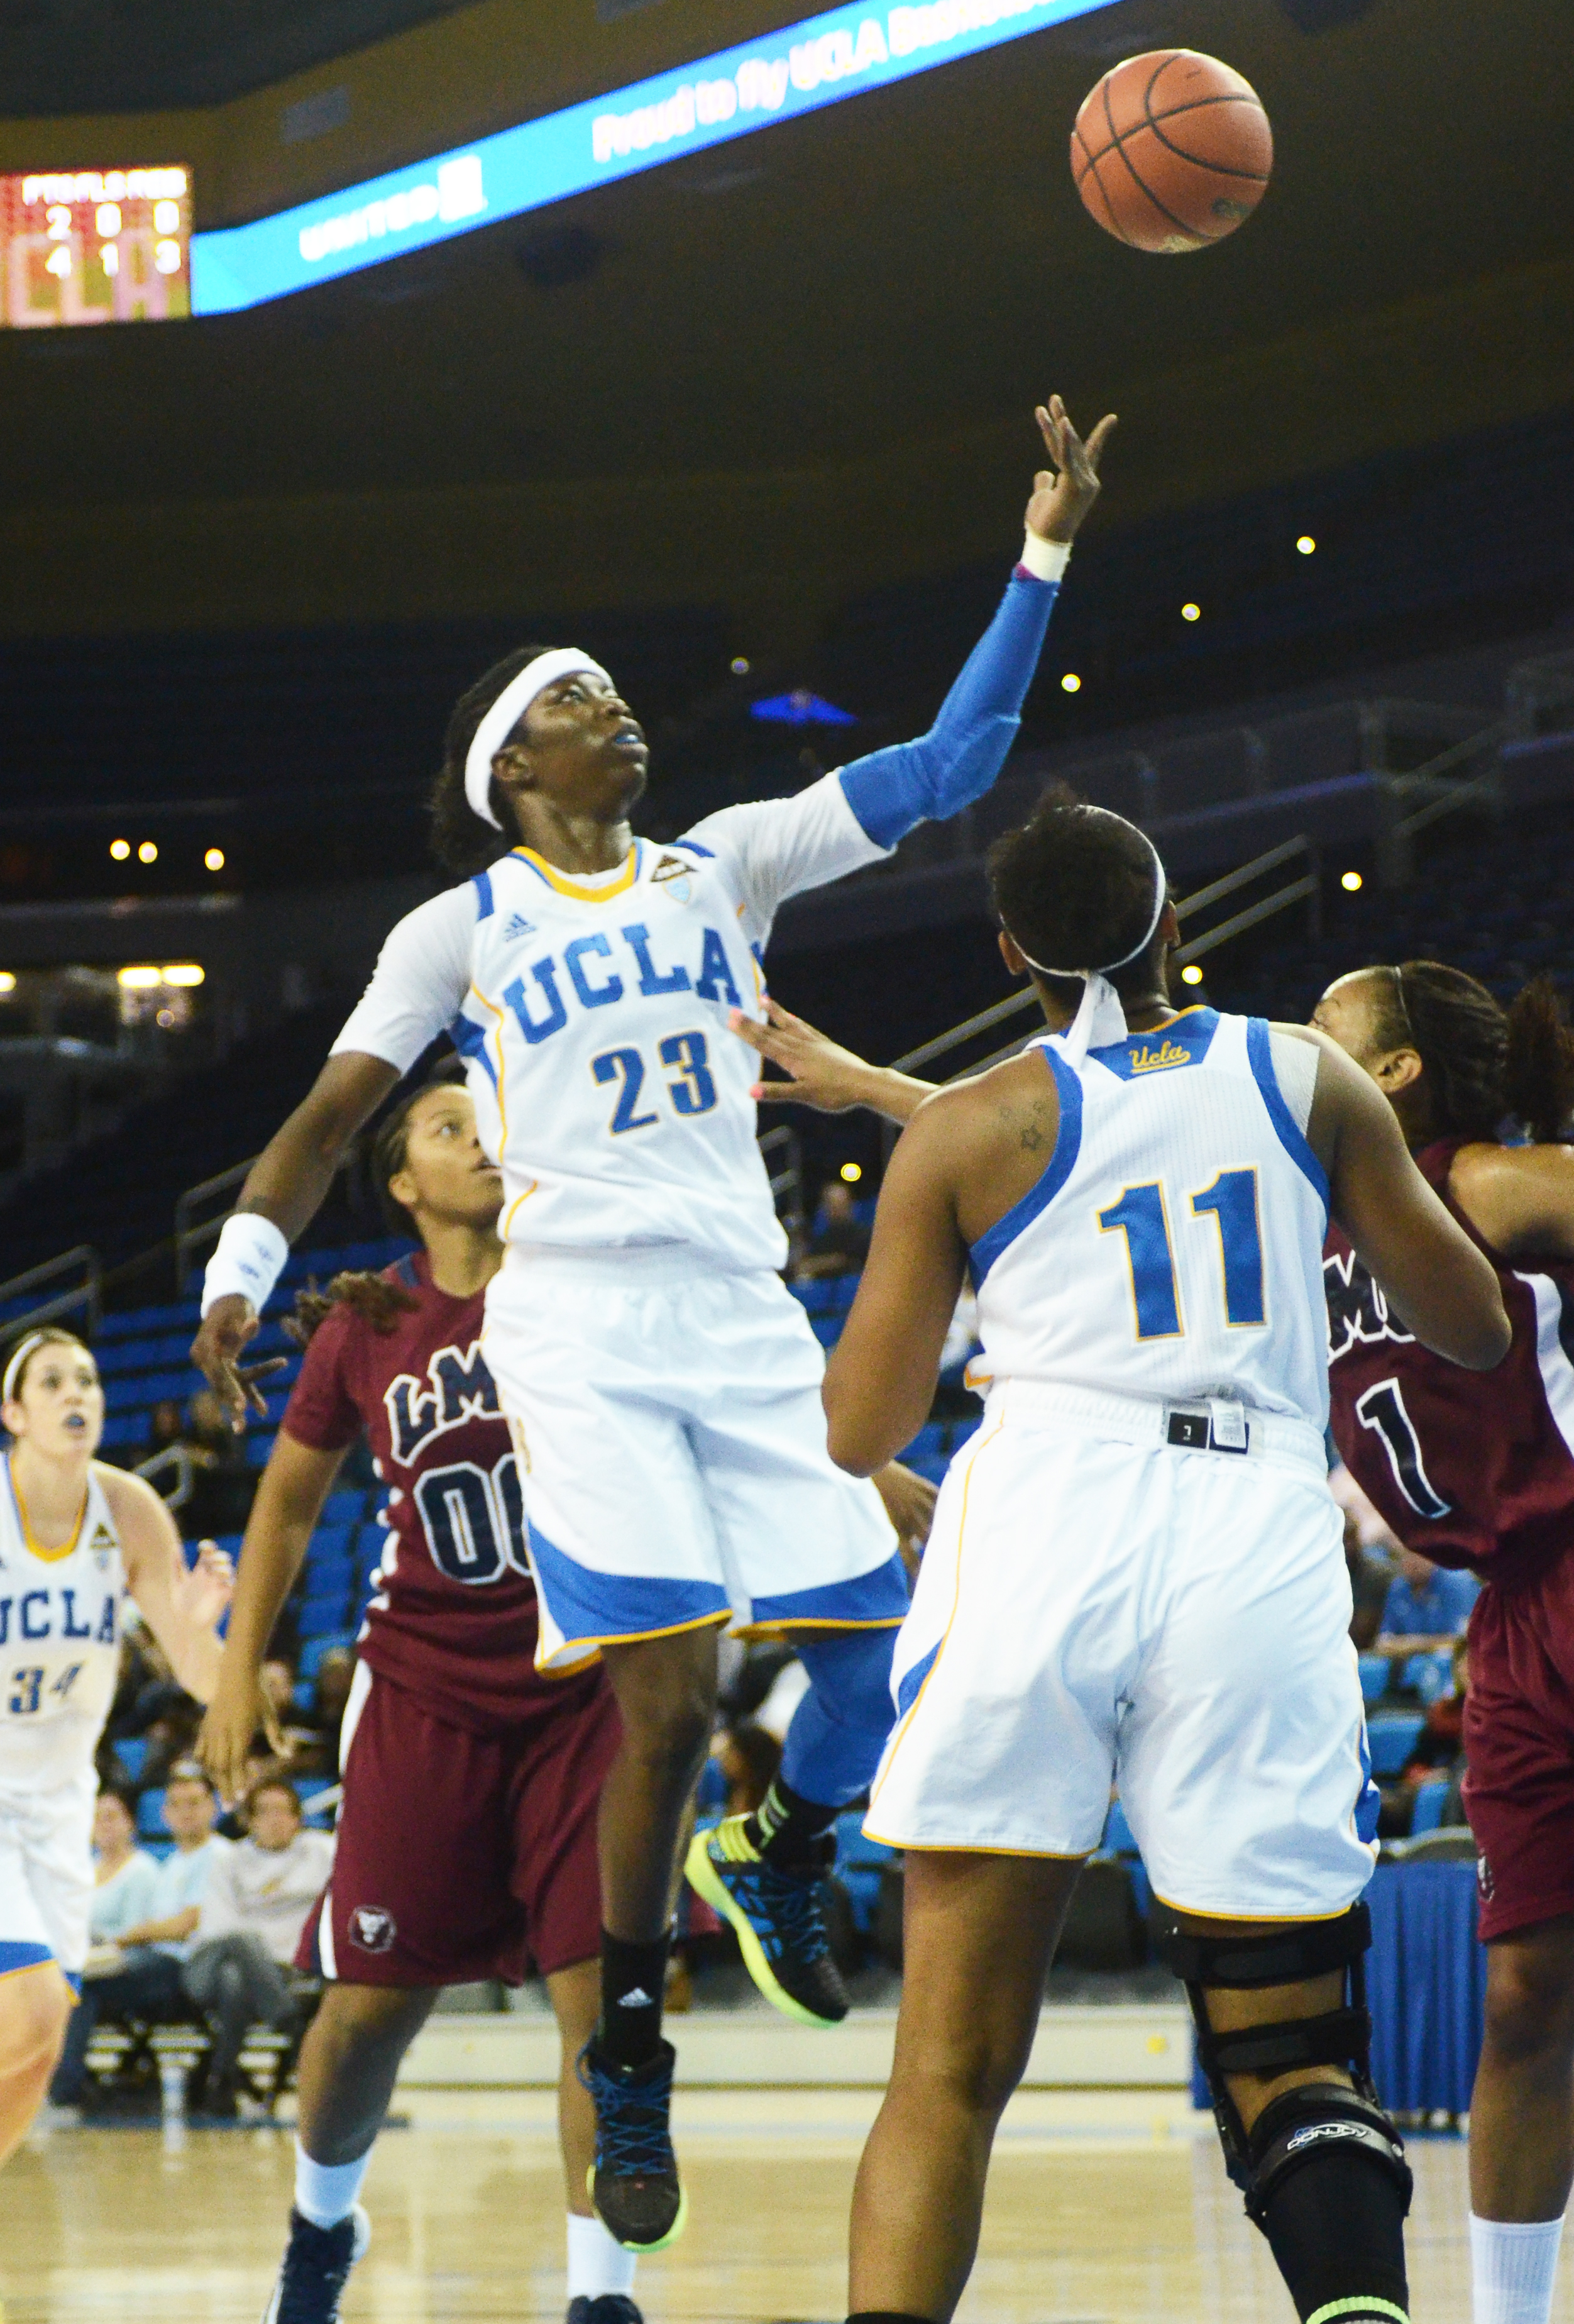 Markel Walker and the UCLA women's basketball team have stressed defense ahead of their road game against No. 12 Texas. Already this season, UCLA has knocked off a ranked opponent away from home, giving the team confidence that it can win games on the road.